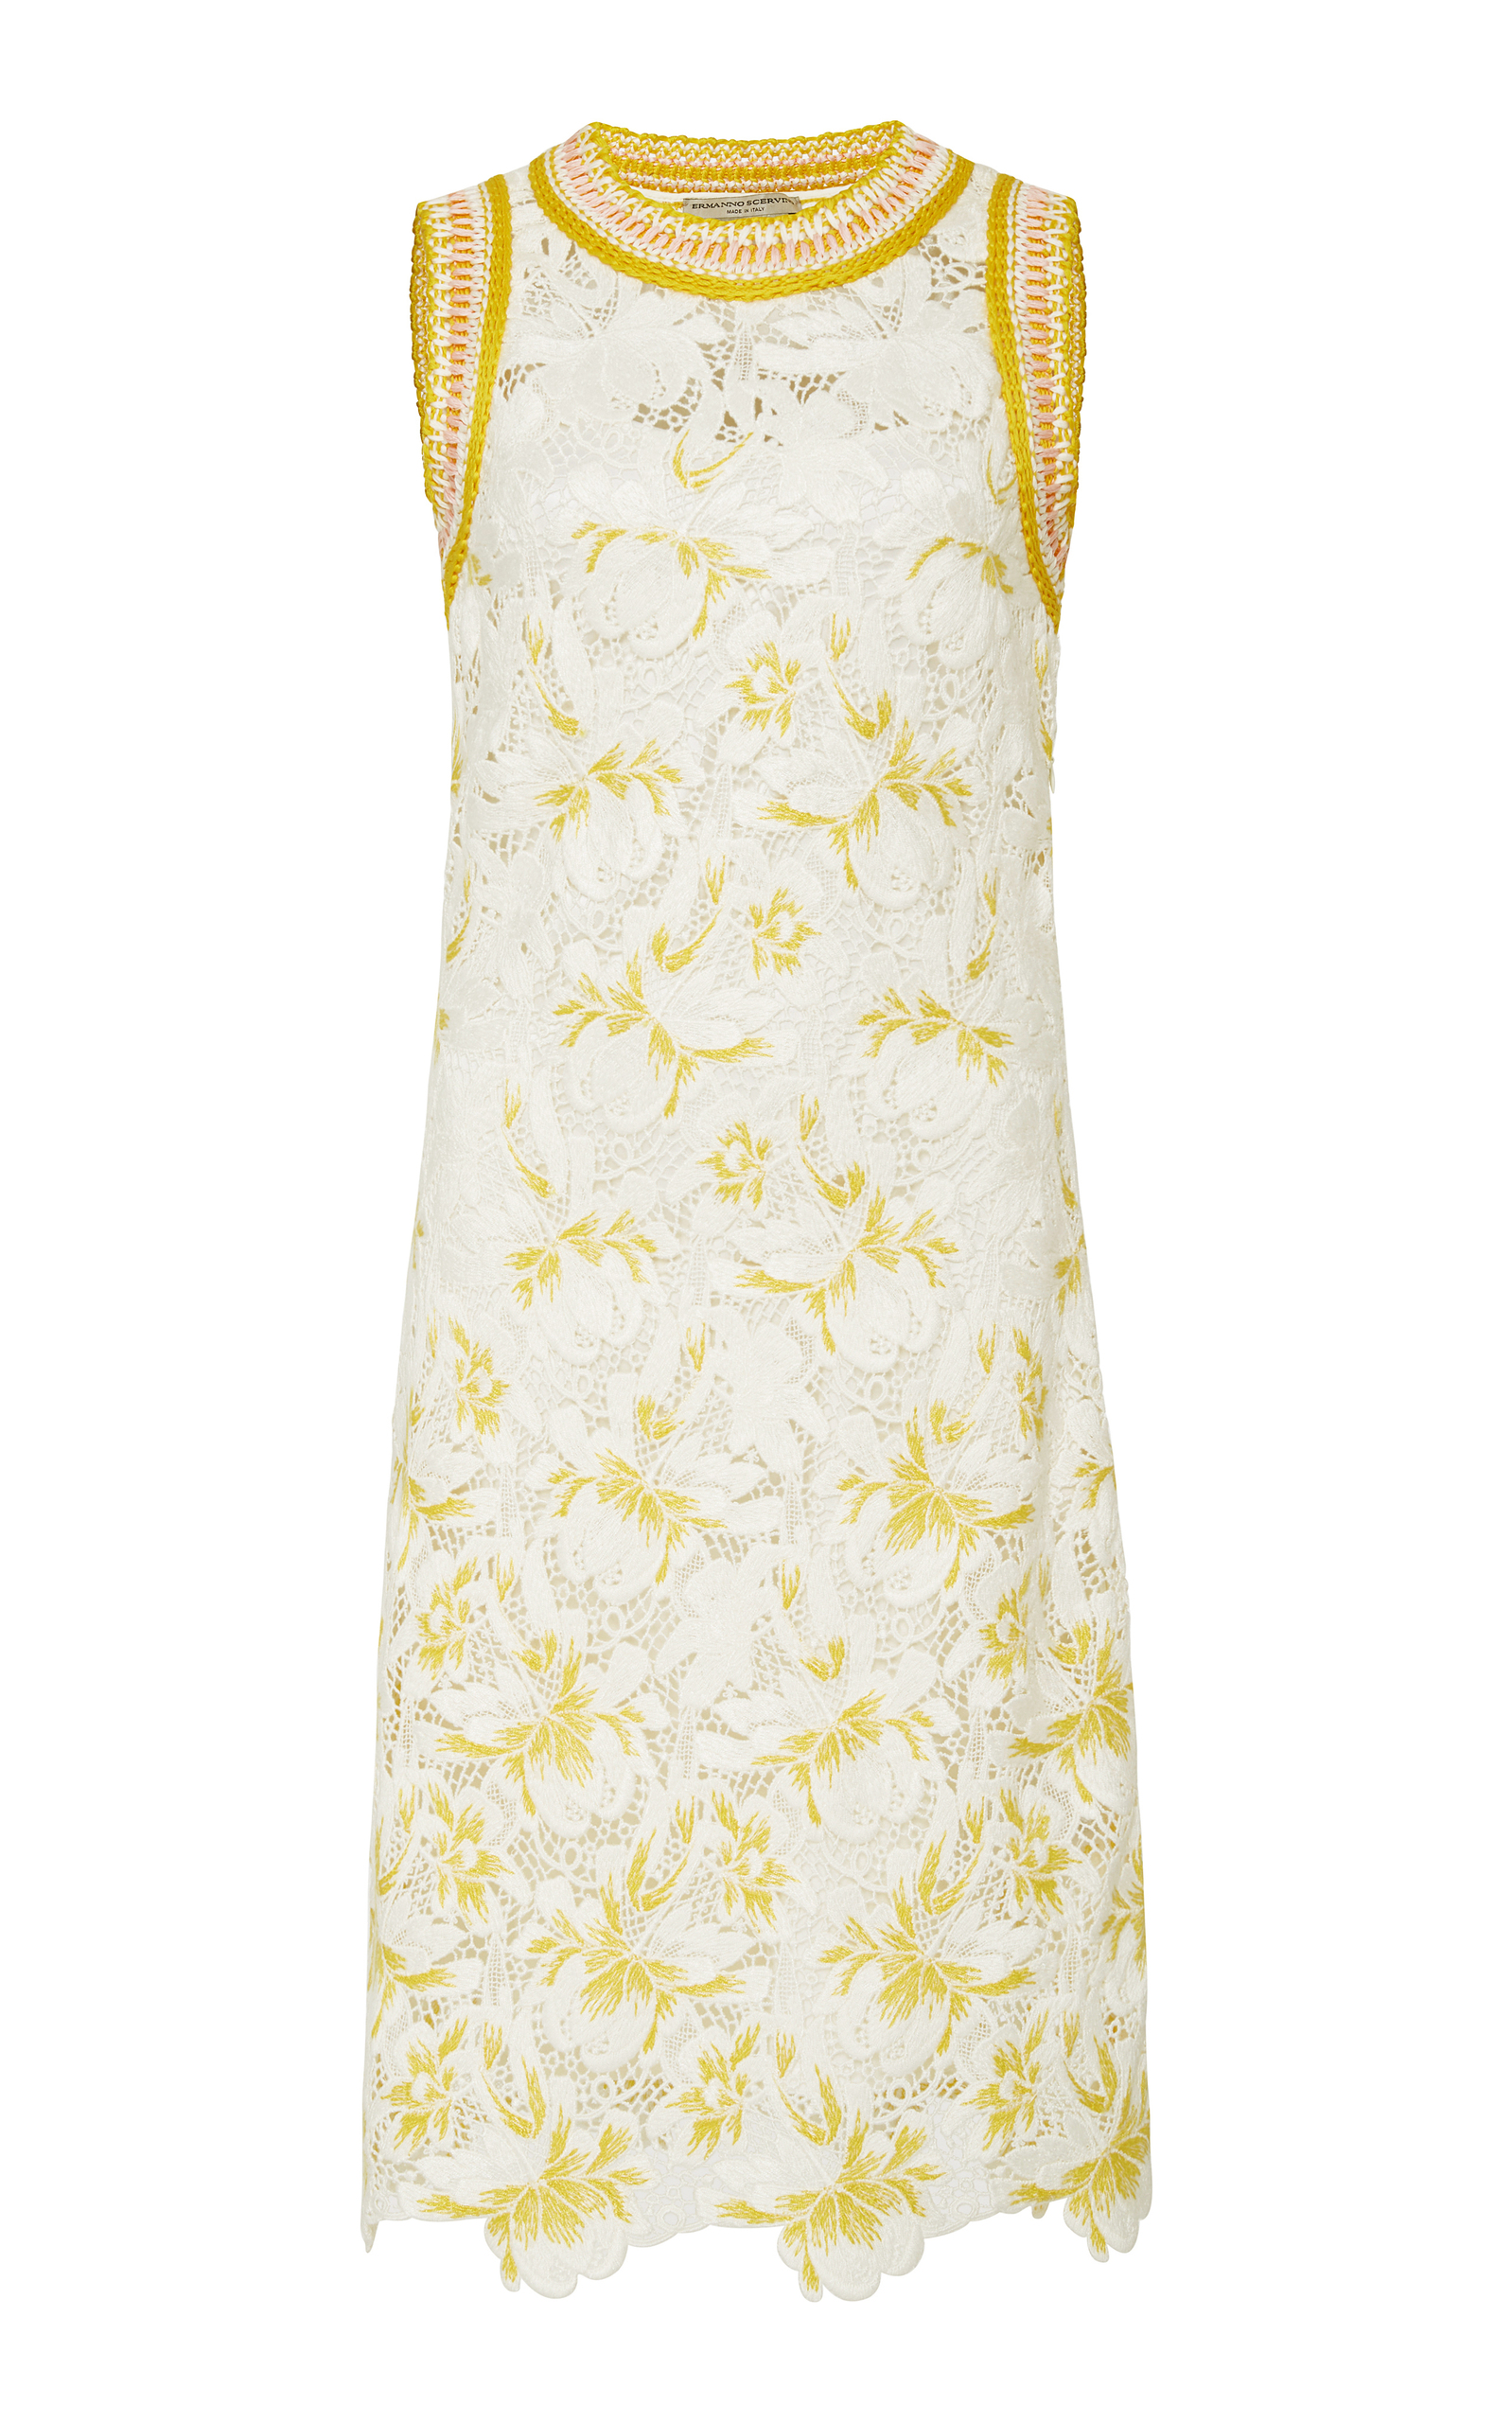 addac9267d Ermanno ScervinoEmbroidered Lace Shift Dress. CLOSE. Loading